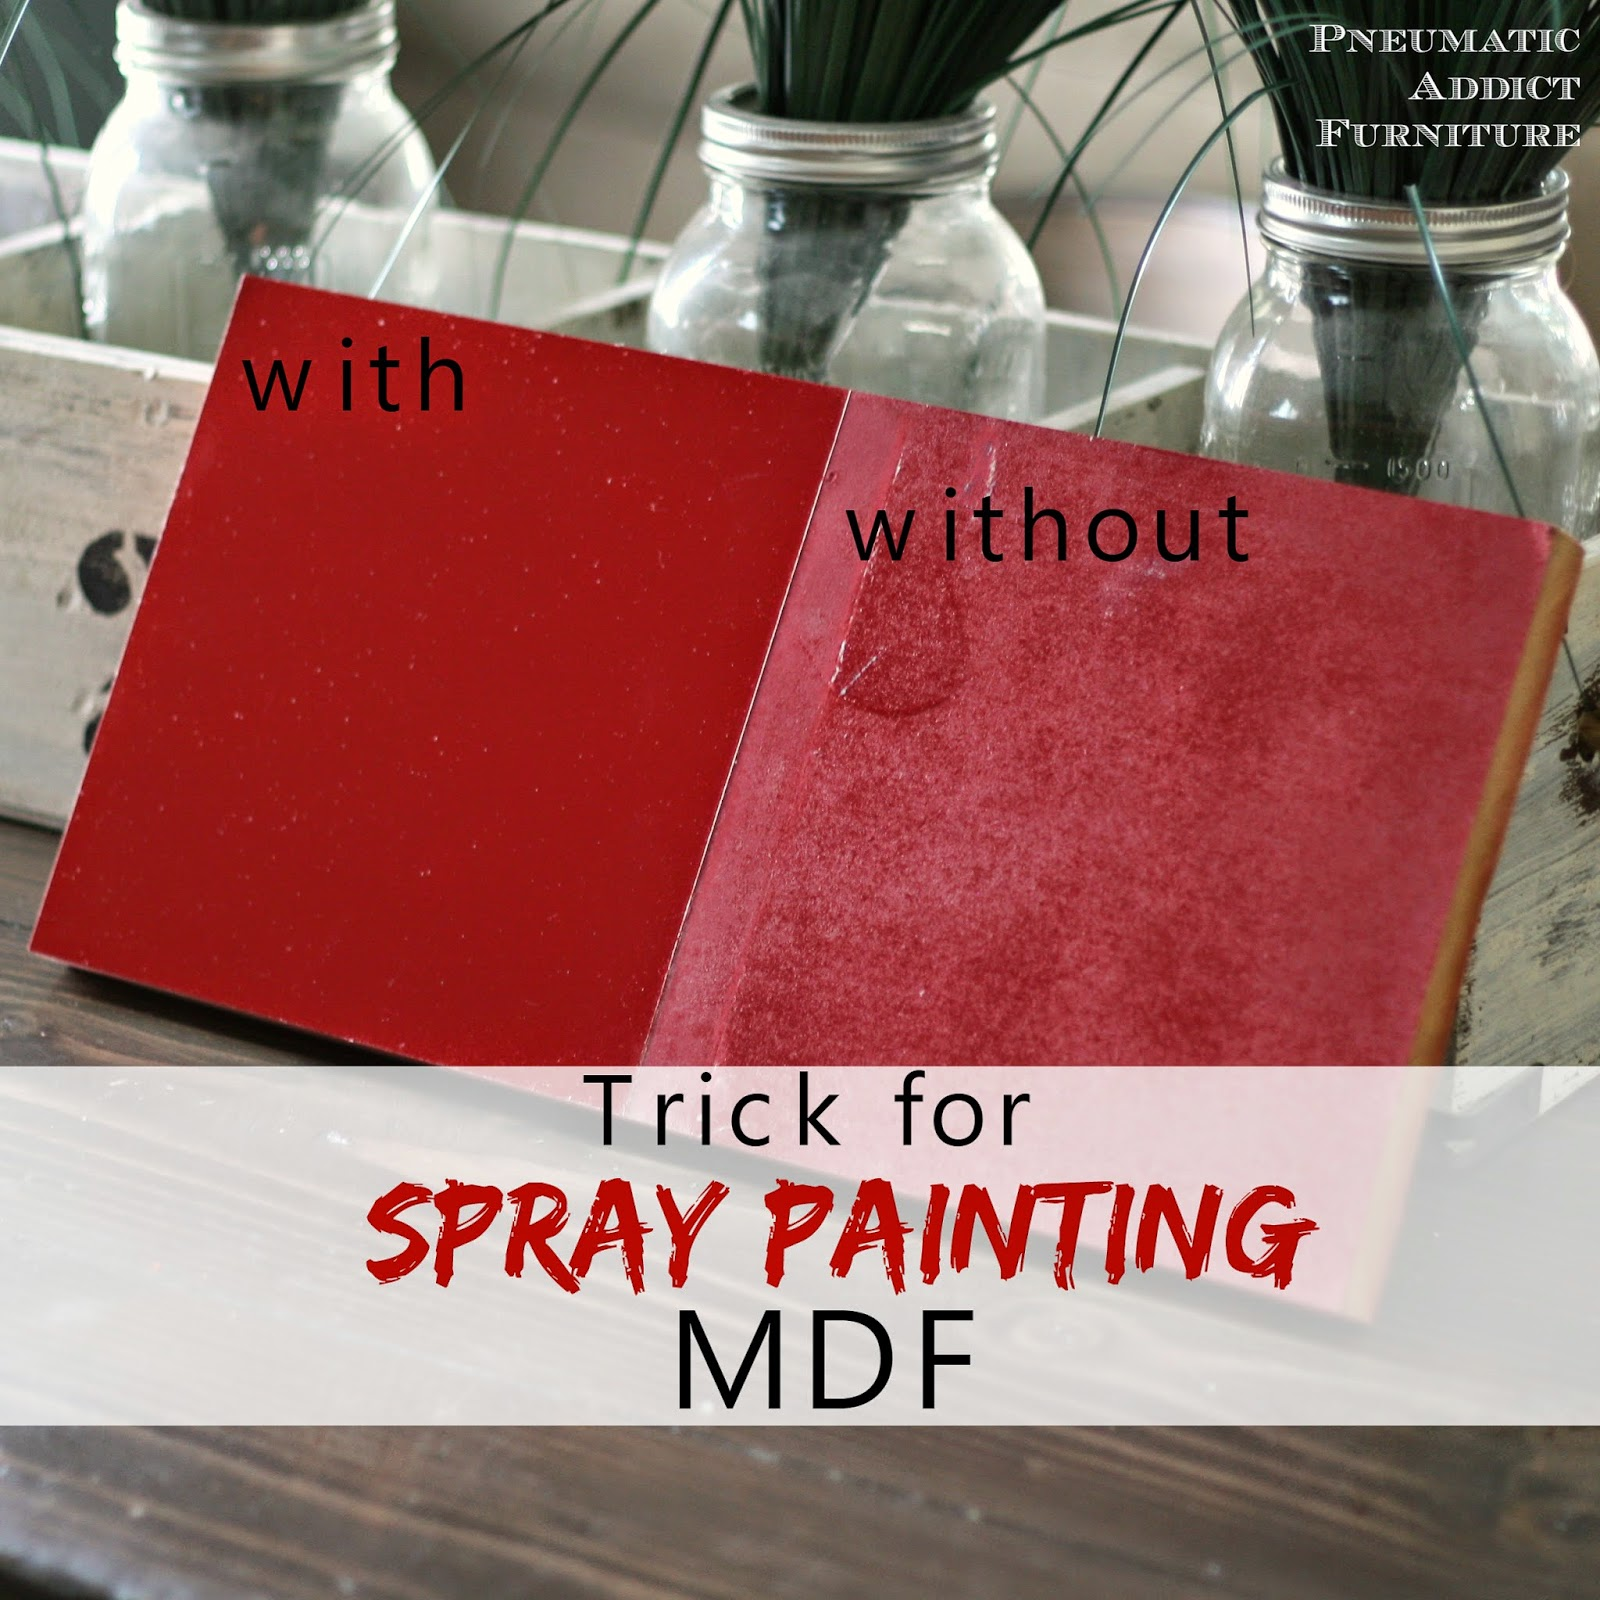 11 Ways To Use Paint In DIY Projects